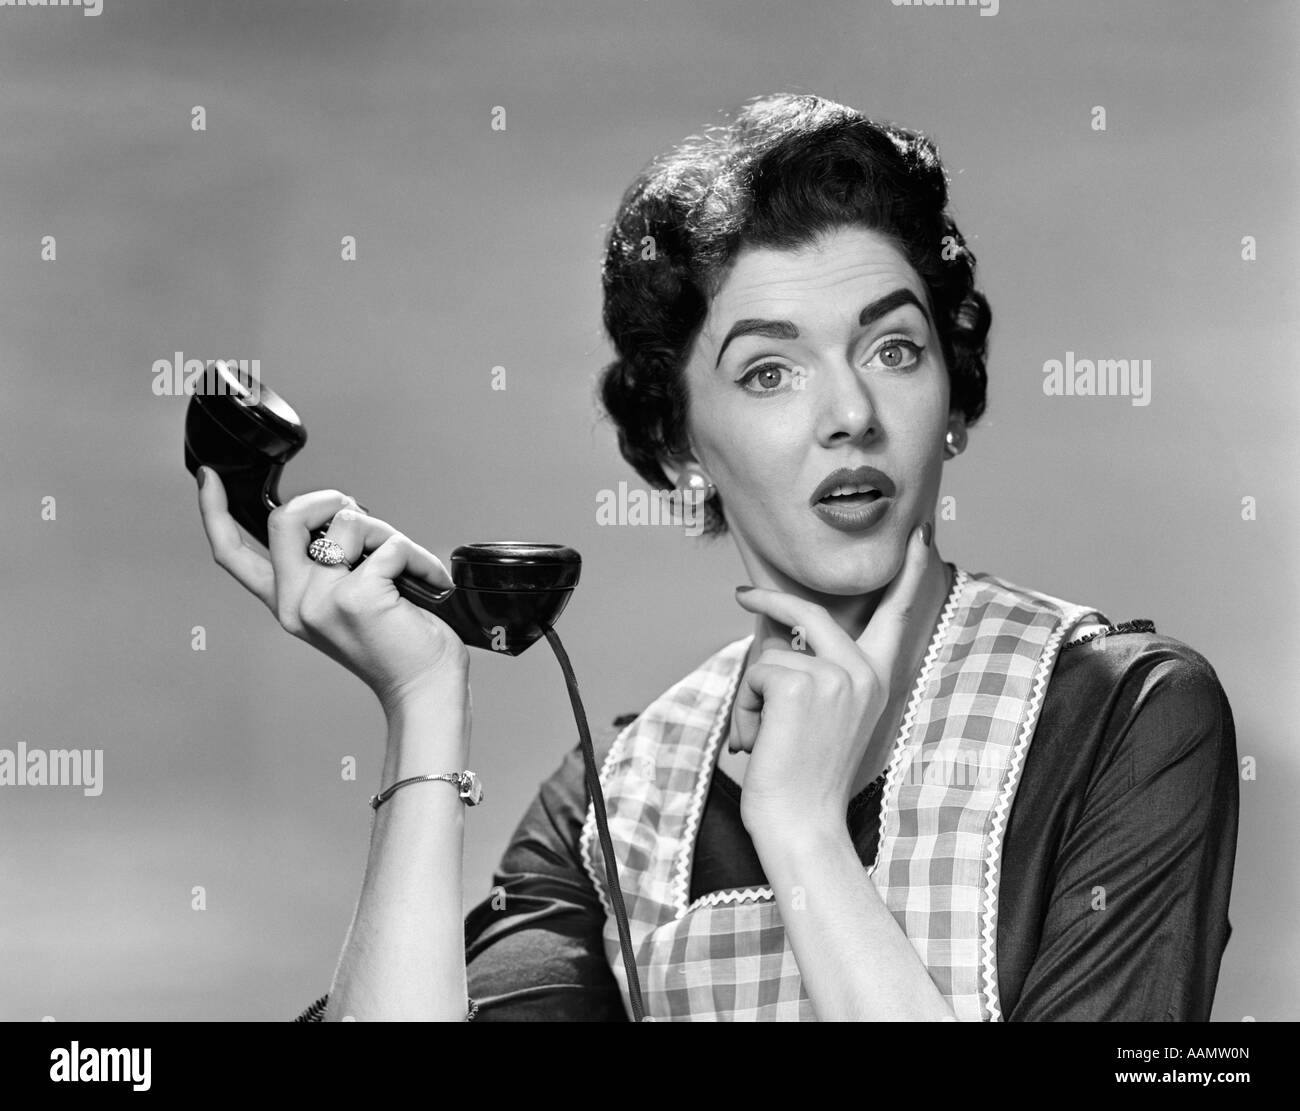 1950s WOMAN LOOKING AT CAMERA HOUSEWIFE HOLDING UP TELEPHONE RECEIVER CONFUSED FACIAL EXPRESSION - Stock Image